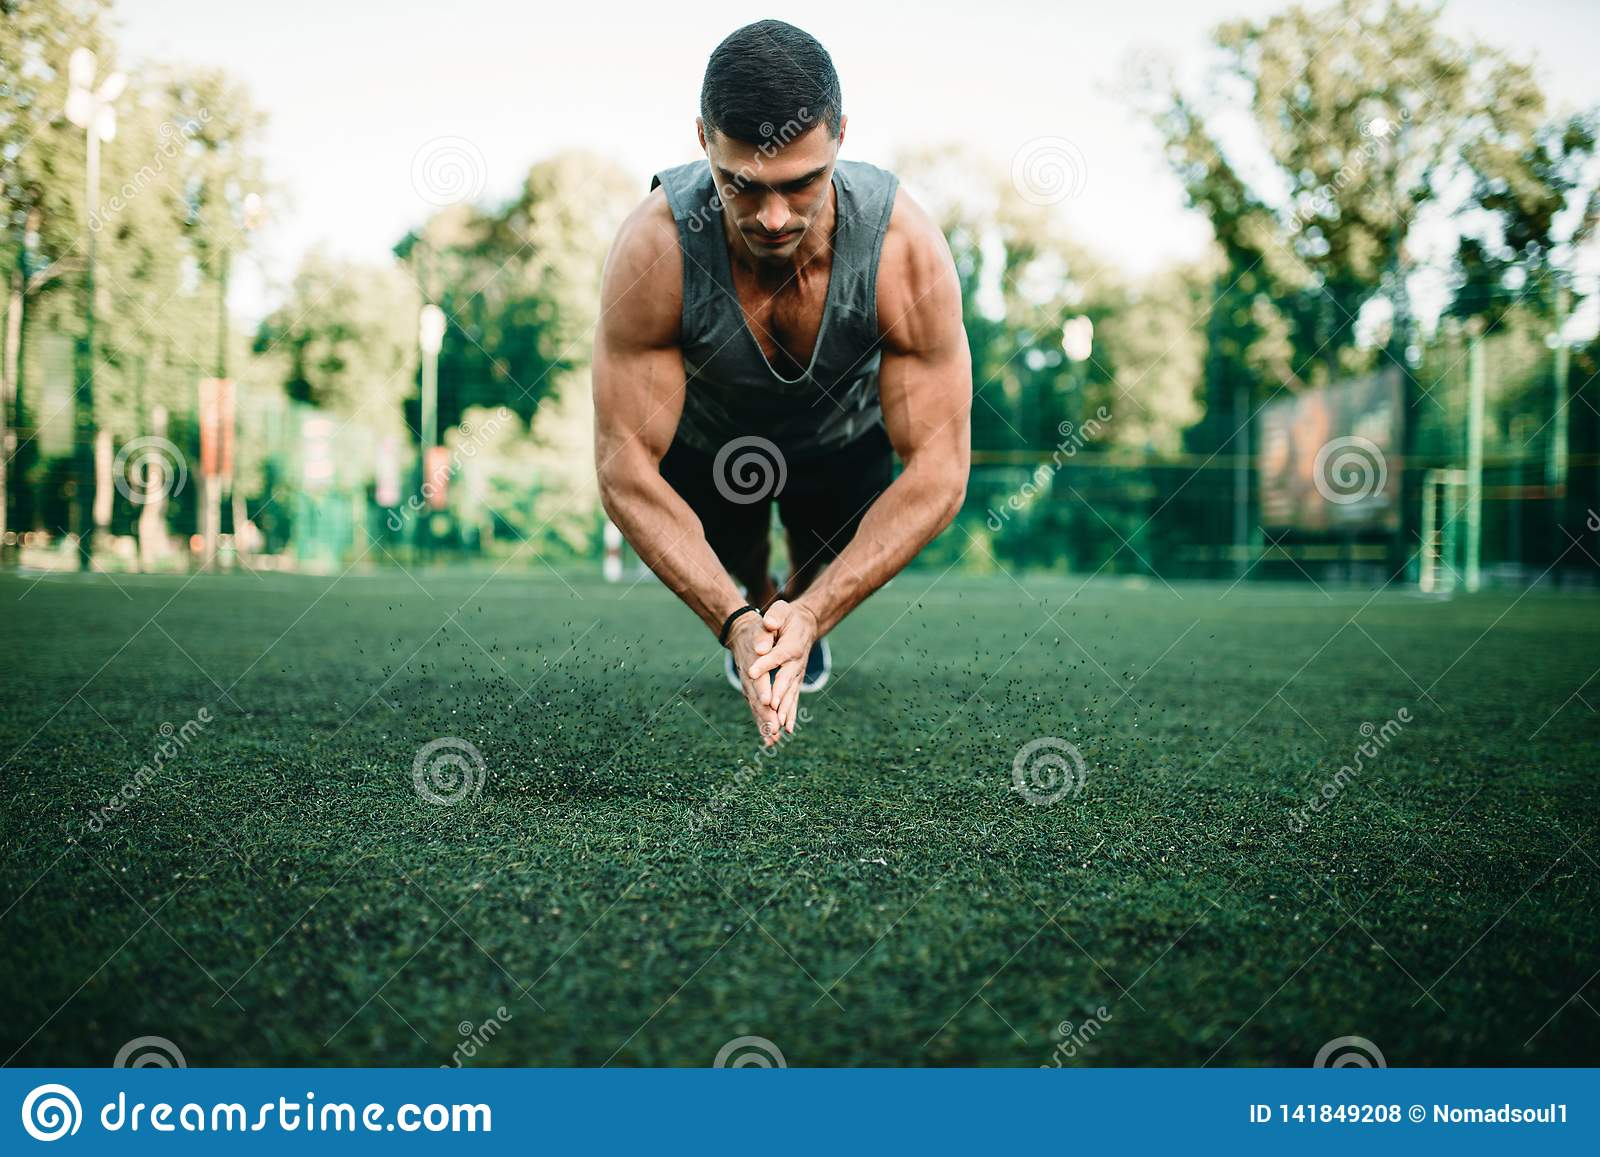 Workout Yours Abdominal Muscles`. Stock Photo - Image of